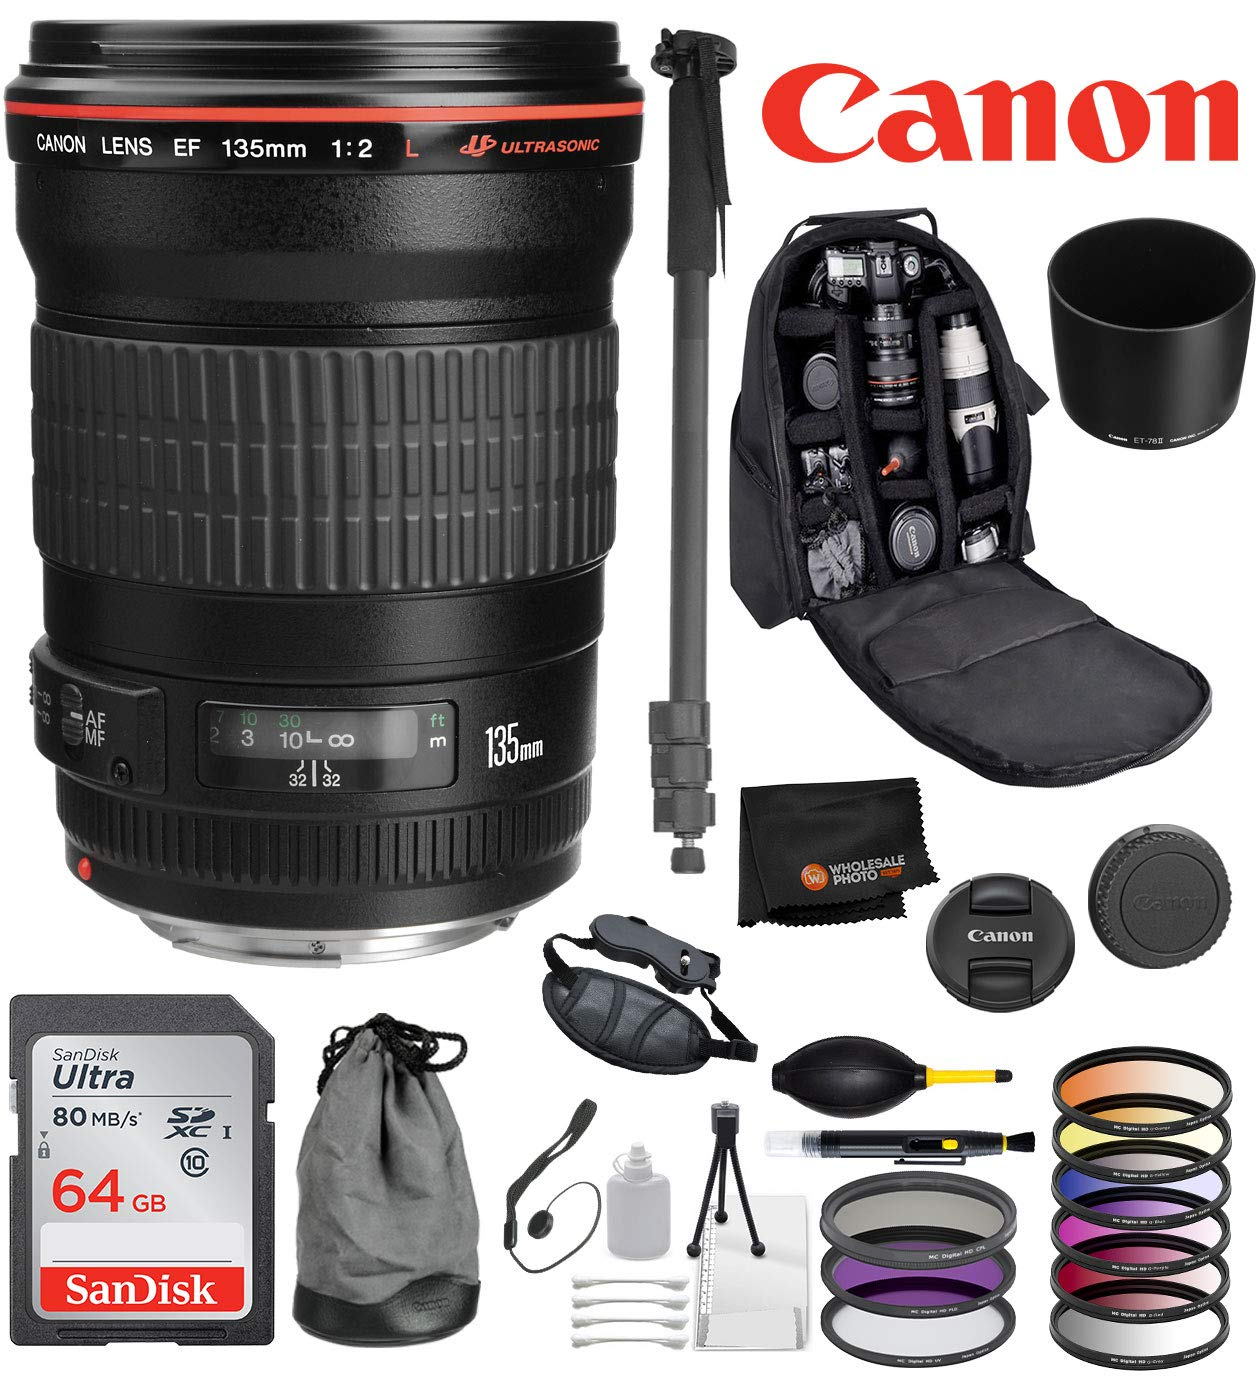 Canon EF 135mm f/2L USM Lens with Professional Bundle Package Deal Kit for EOS 7D Mark II, 6D Mark II, 5D Mark IV, 5D S R, 5D S, 5D Mark III, 80D, 70D, 77D, T5, T6, T6s, T7i, SL2 by Canon